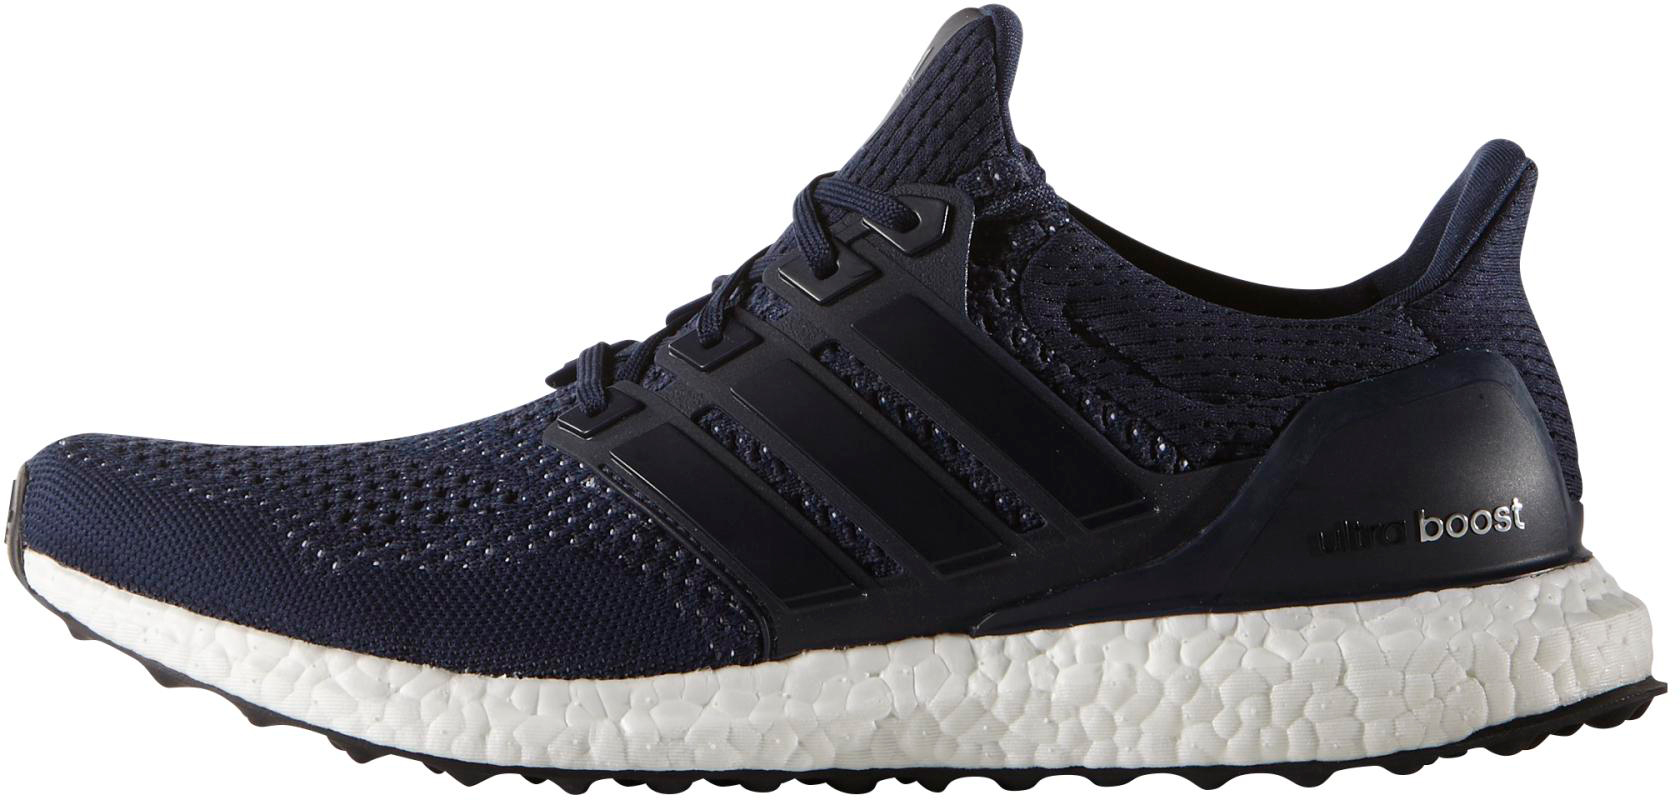 De Chaussures Ultra Boost ShoesnavyAw15 RunningAdidas SMpzGqUV